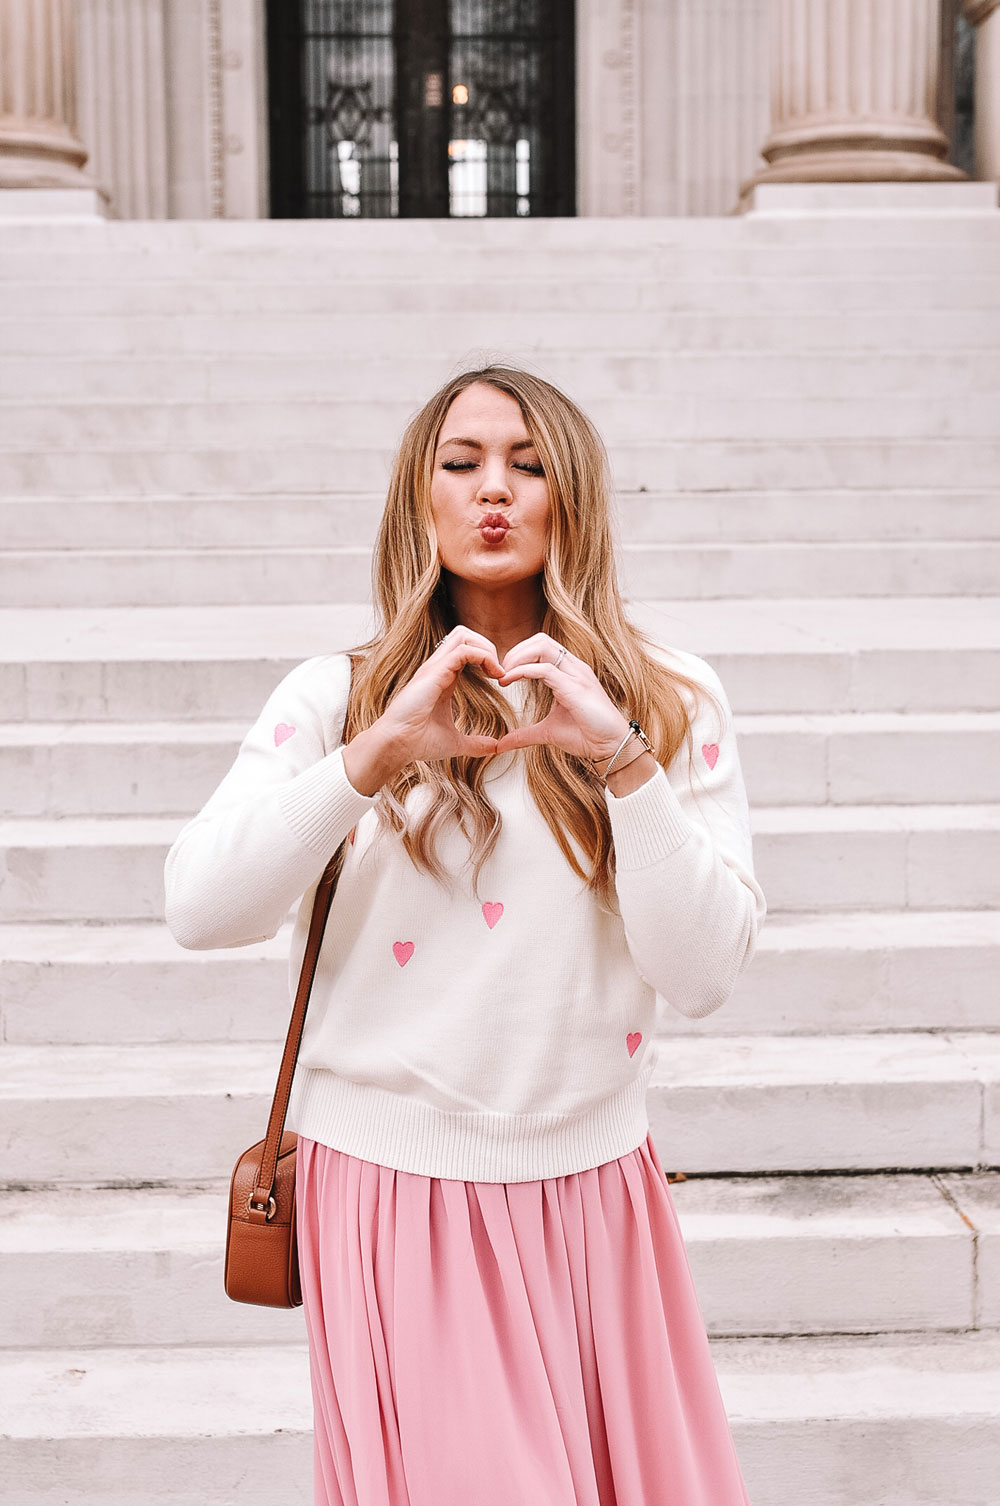 Oklahoma blogger Amanda Martin shares tips on what to wear for Valentine's Day